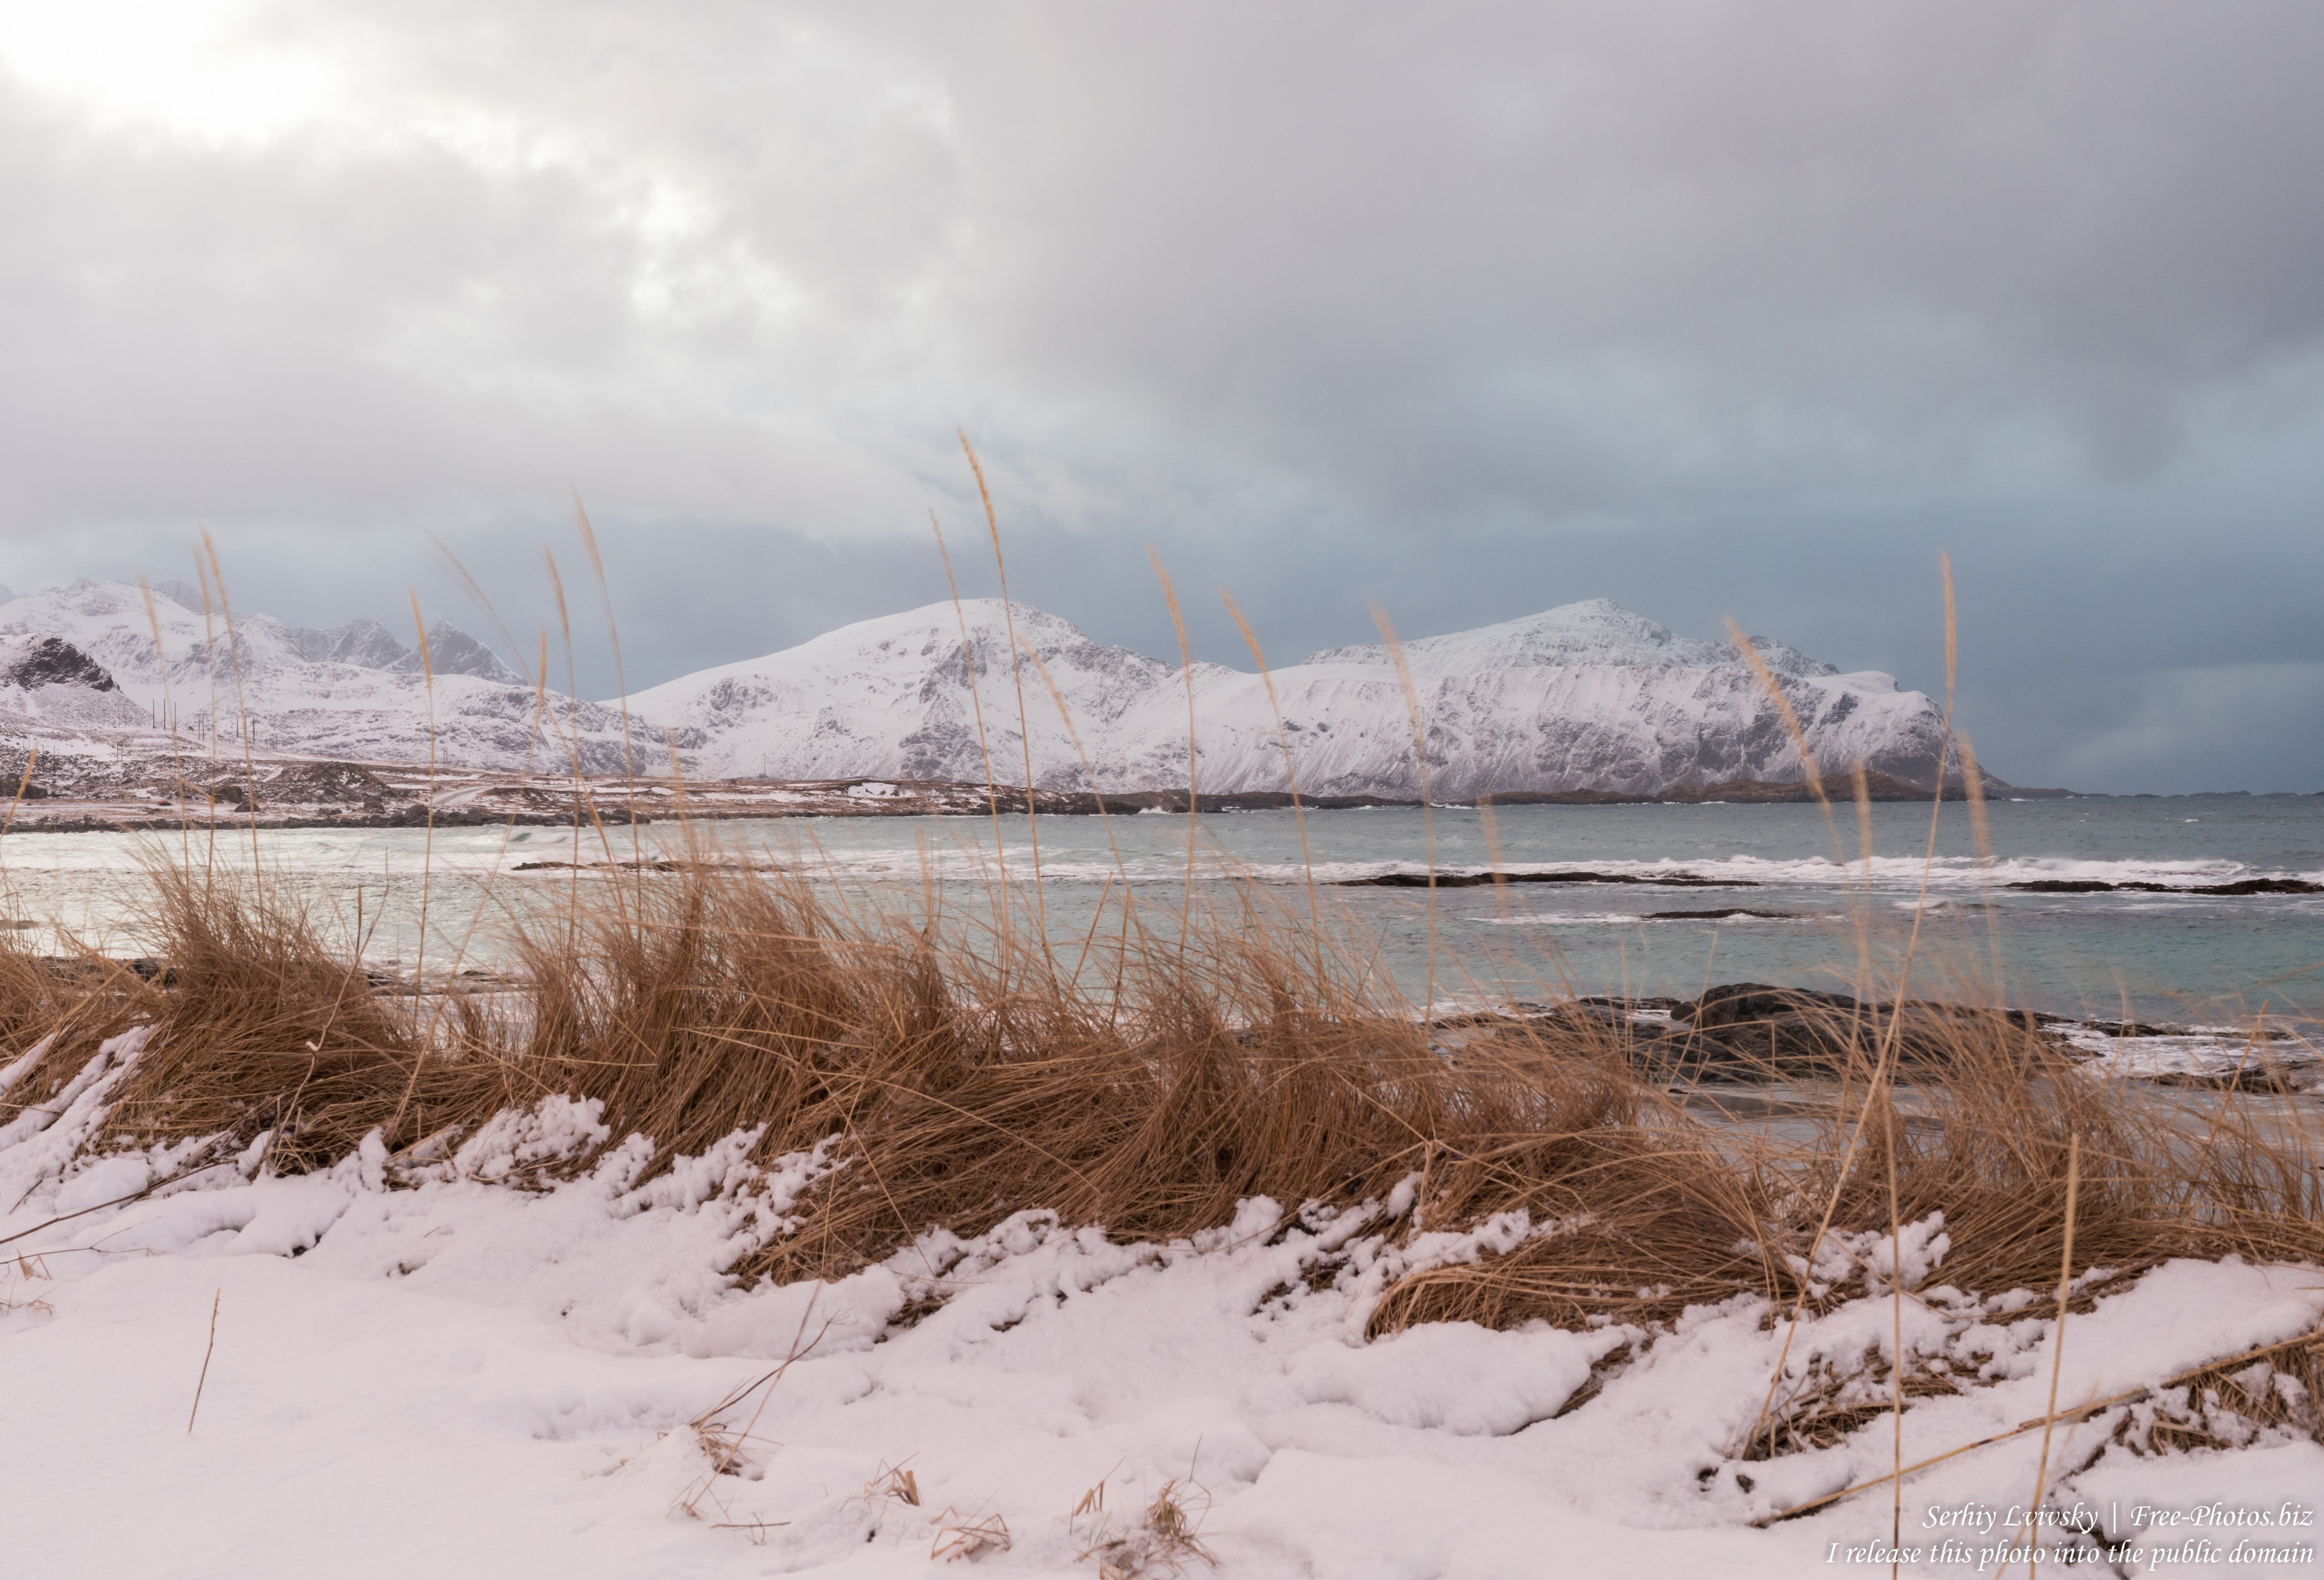 Skagsanden beach, Norway, photographed in February 2020 by Serhiy Lvivsky, picture 13